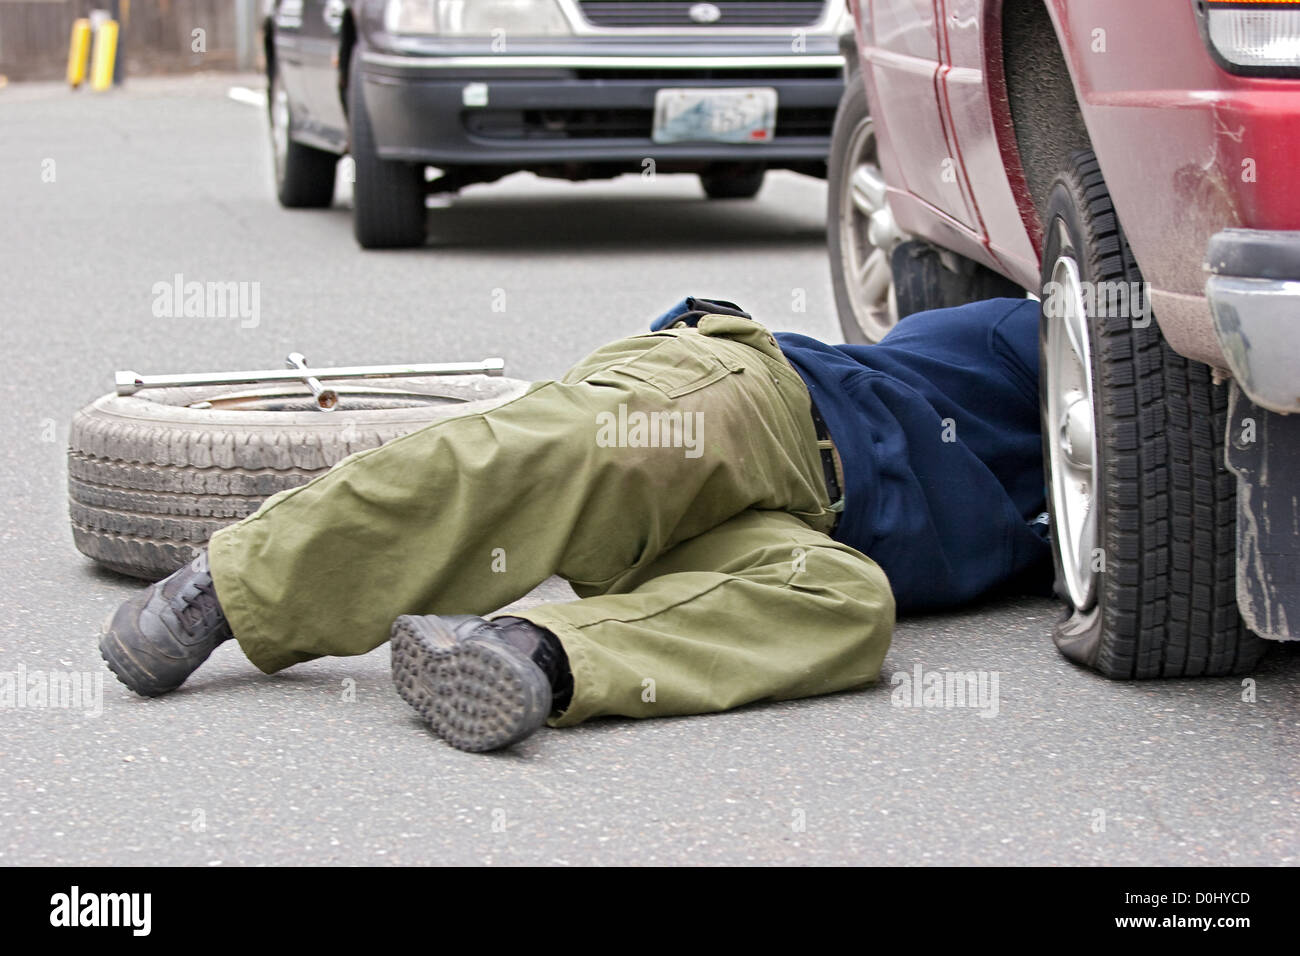 Spare Tire Stock Photos Amp Spare Tire Stock Images Alamy